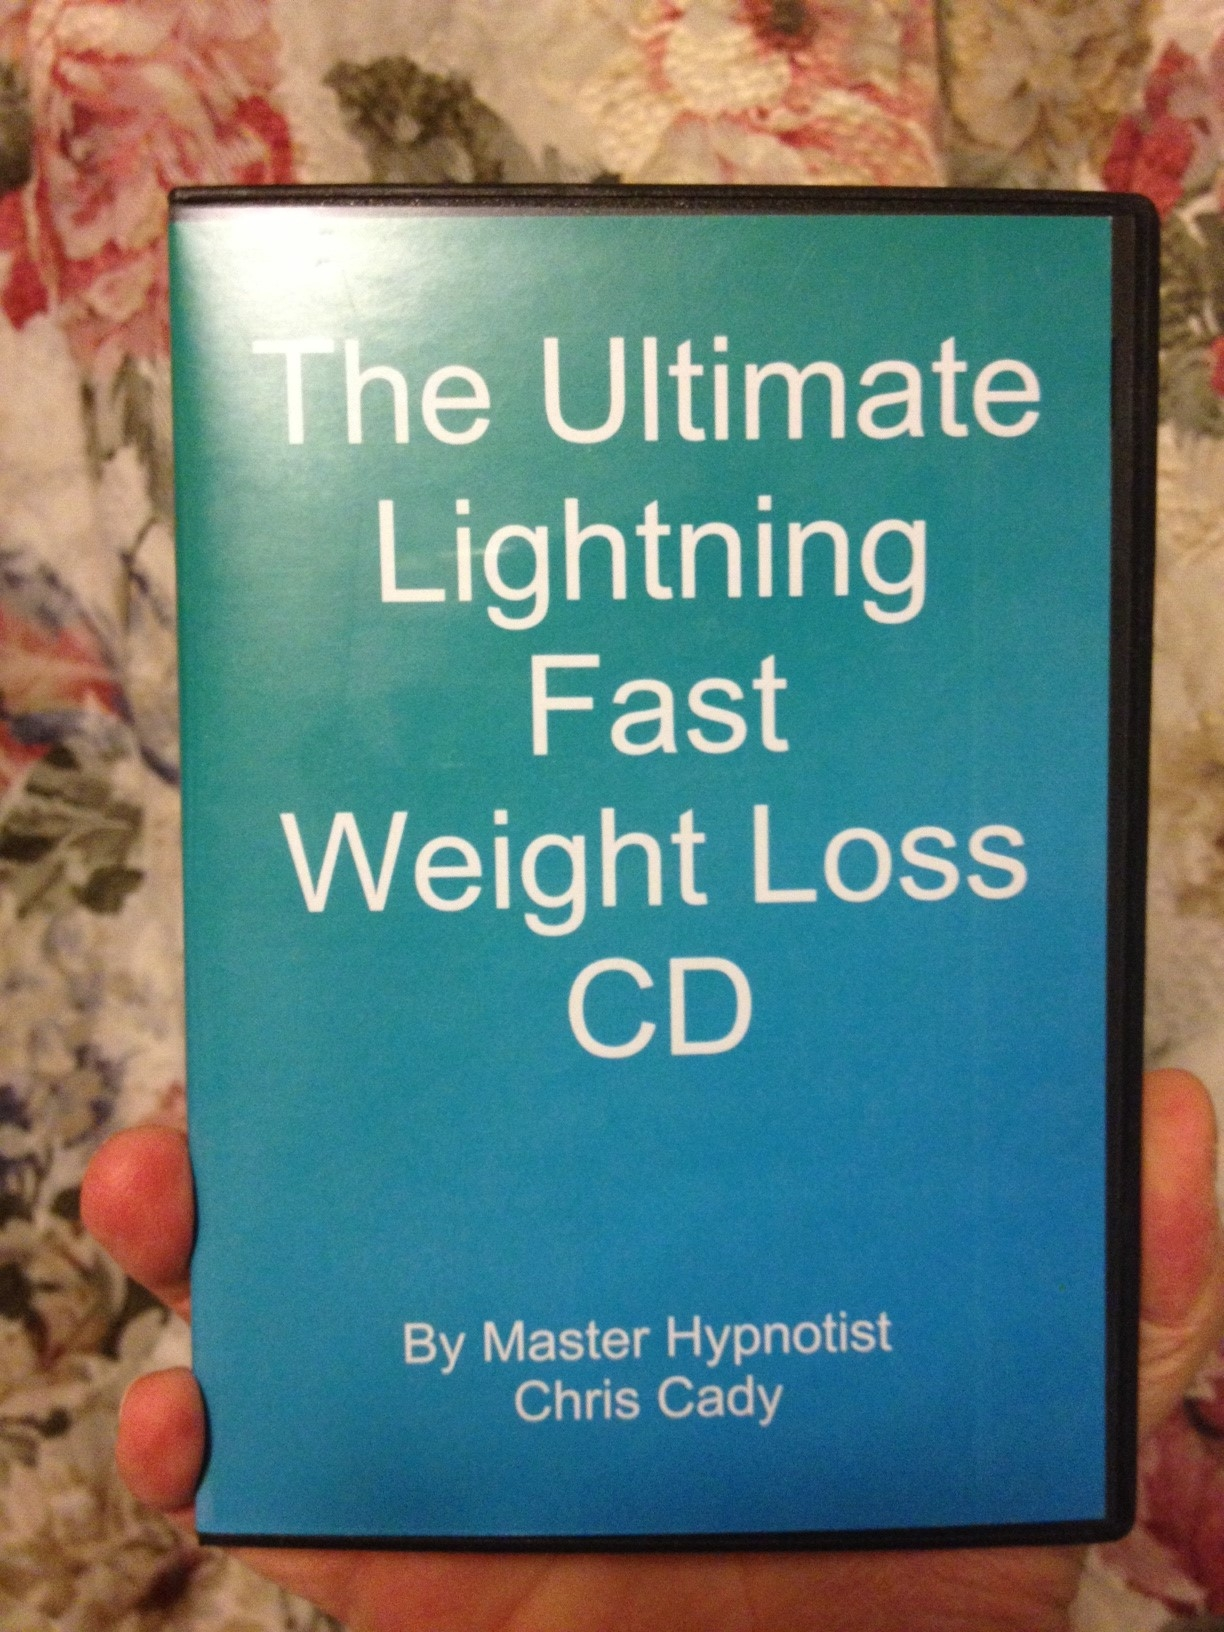 hypnosis weight loss cd mp3 for men and women